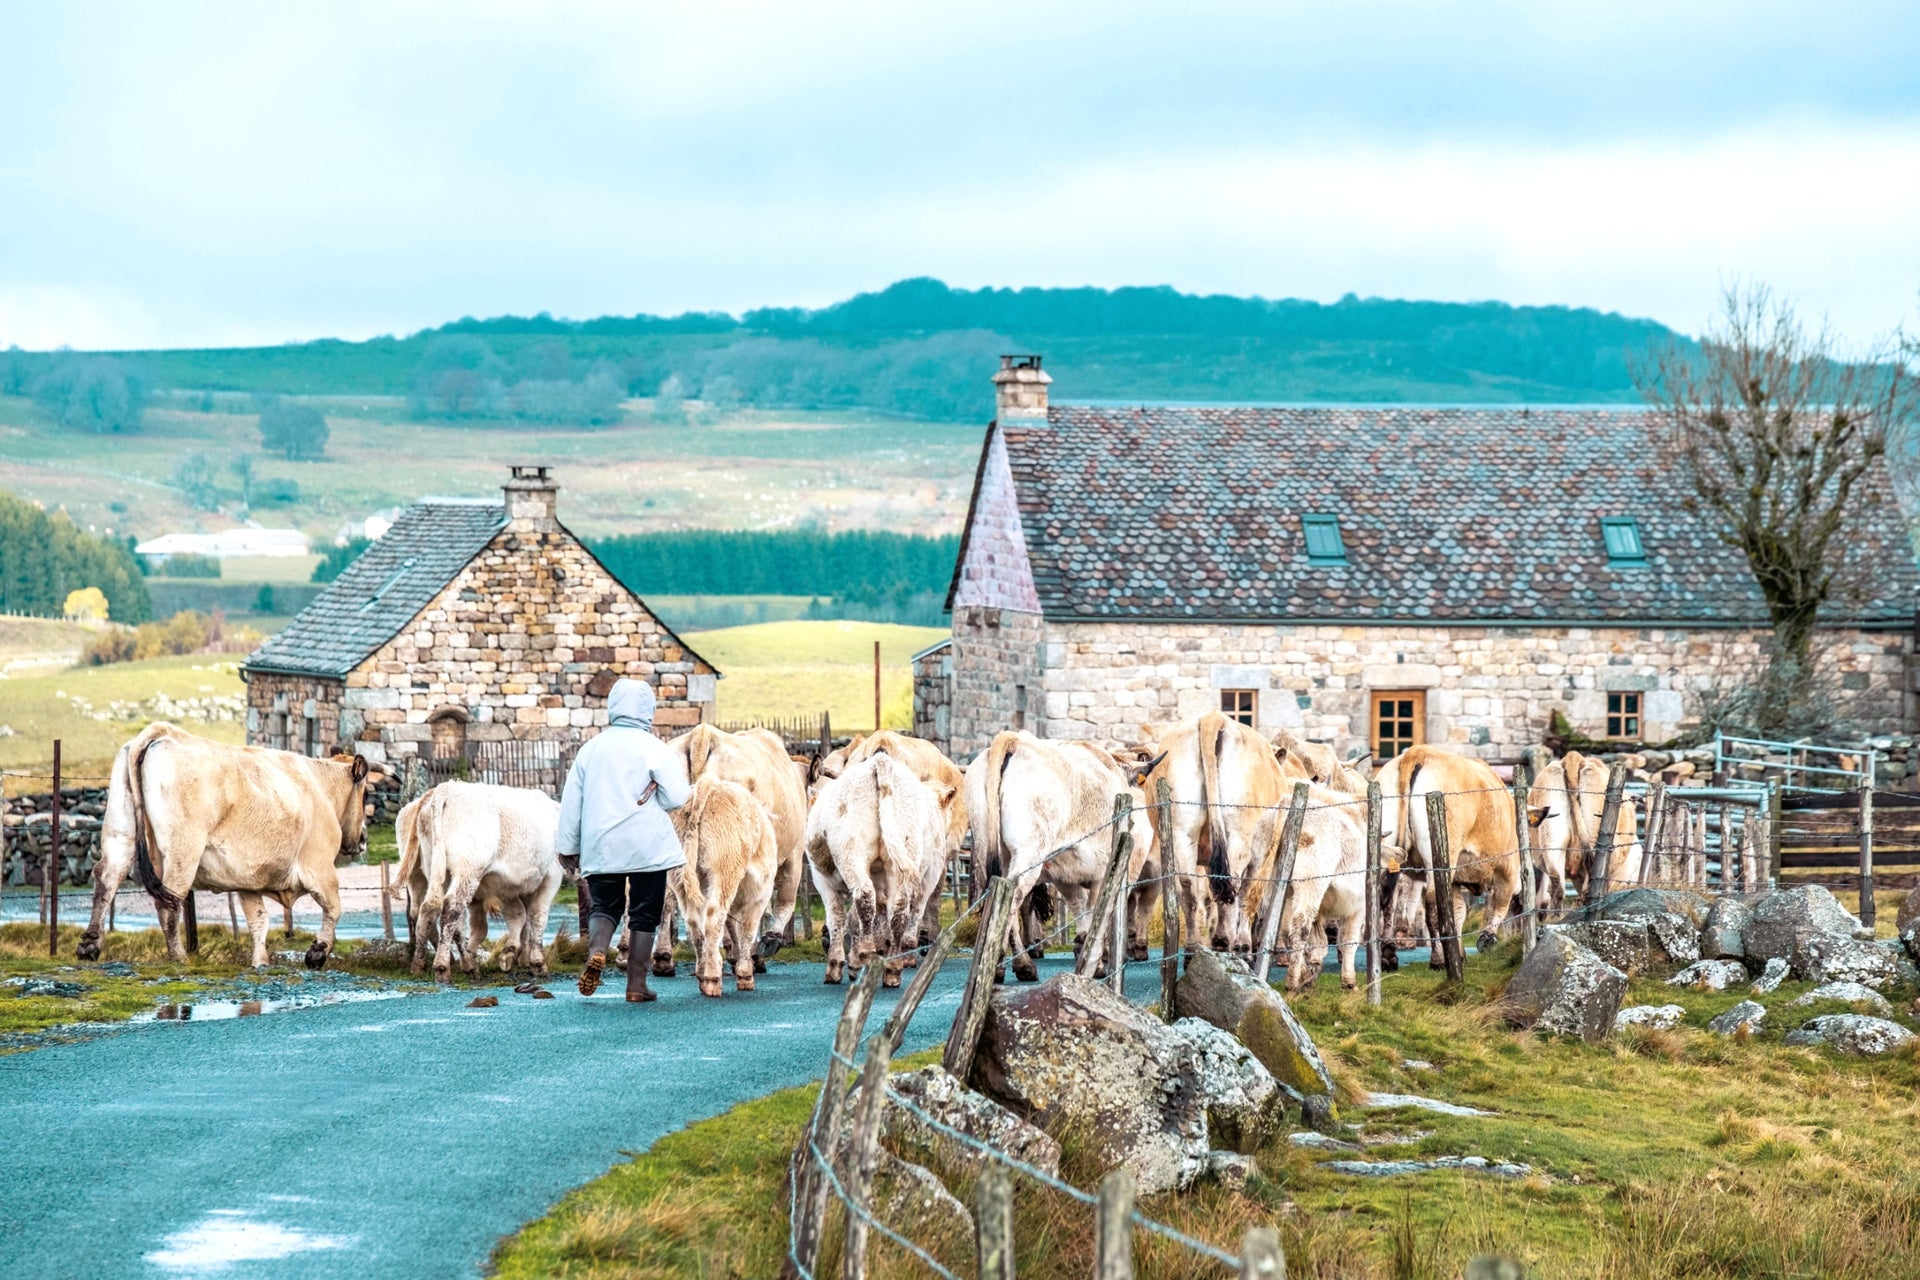 """Some people give credit for Lozère's recovery to the cows herded here. Today, the """"Aubrac steak"""" is known across France."""